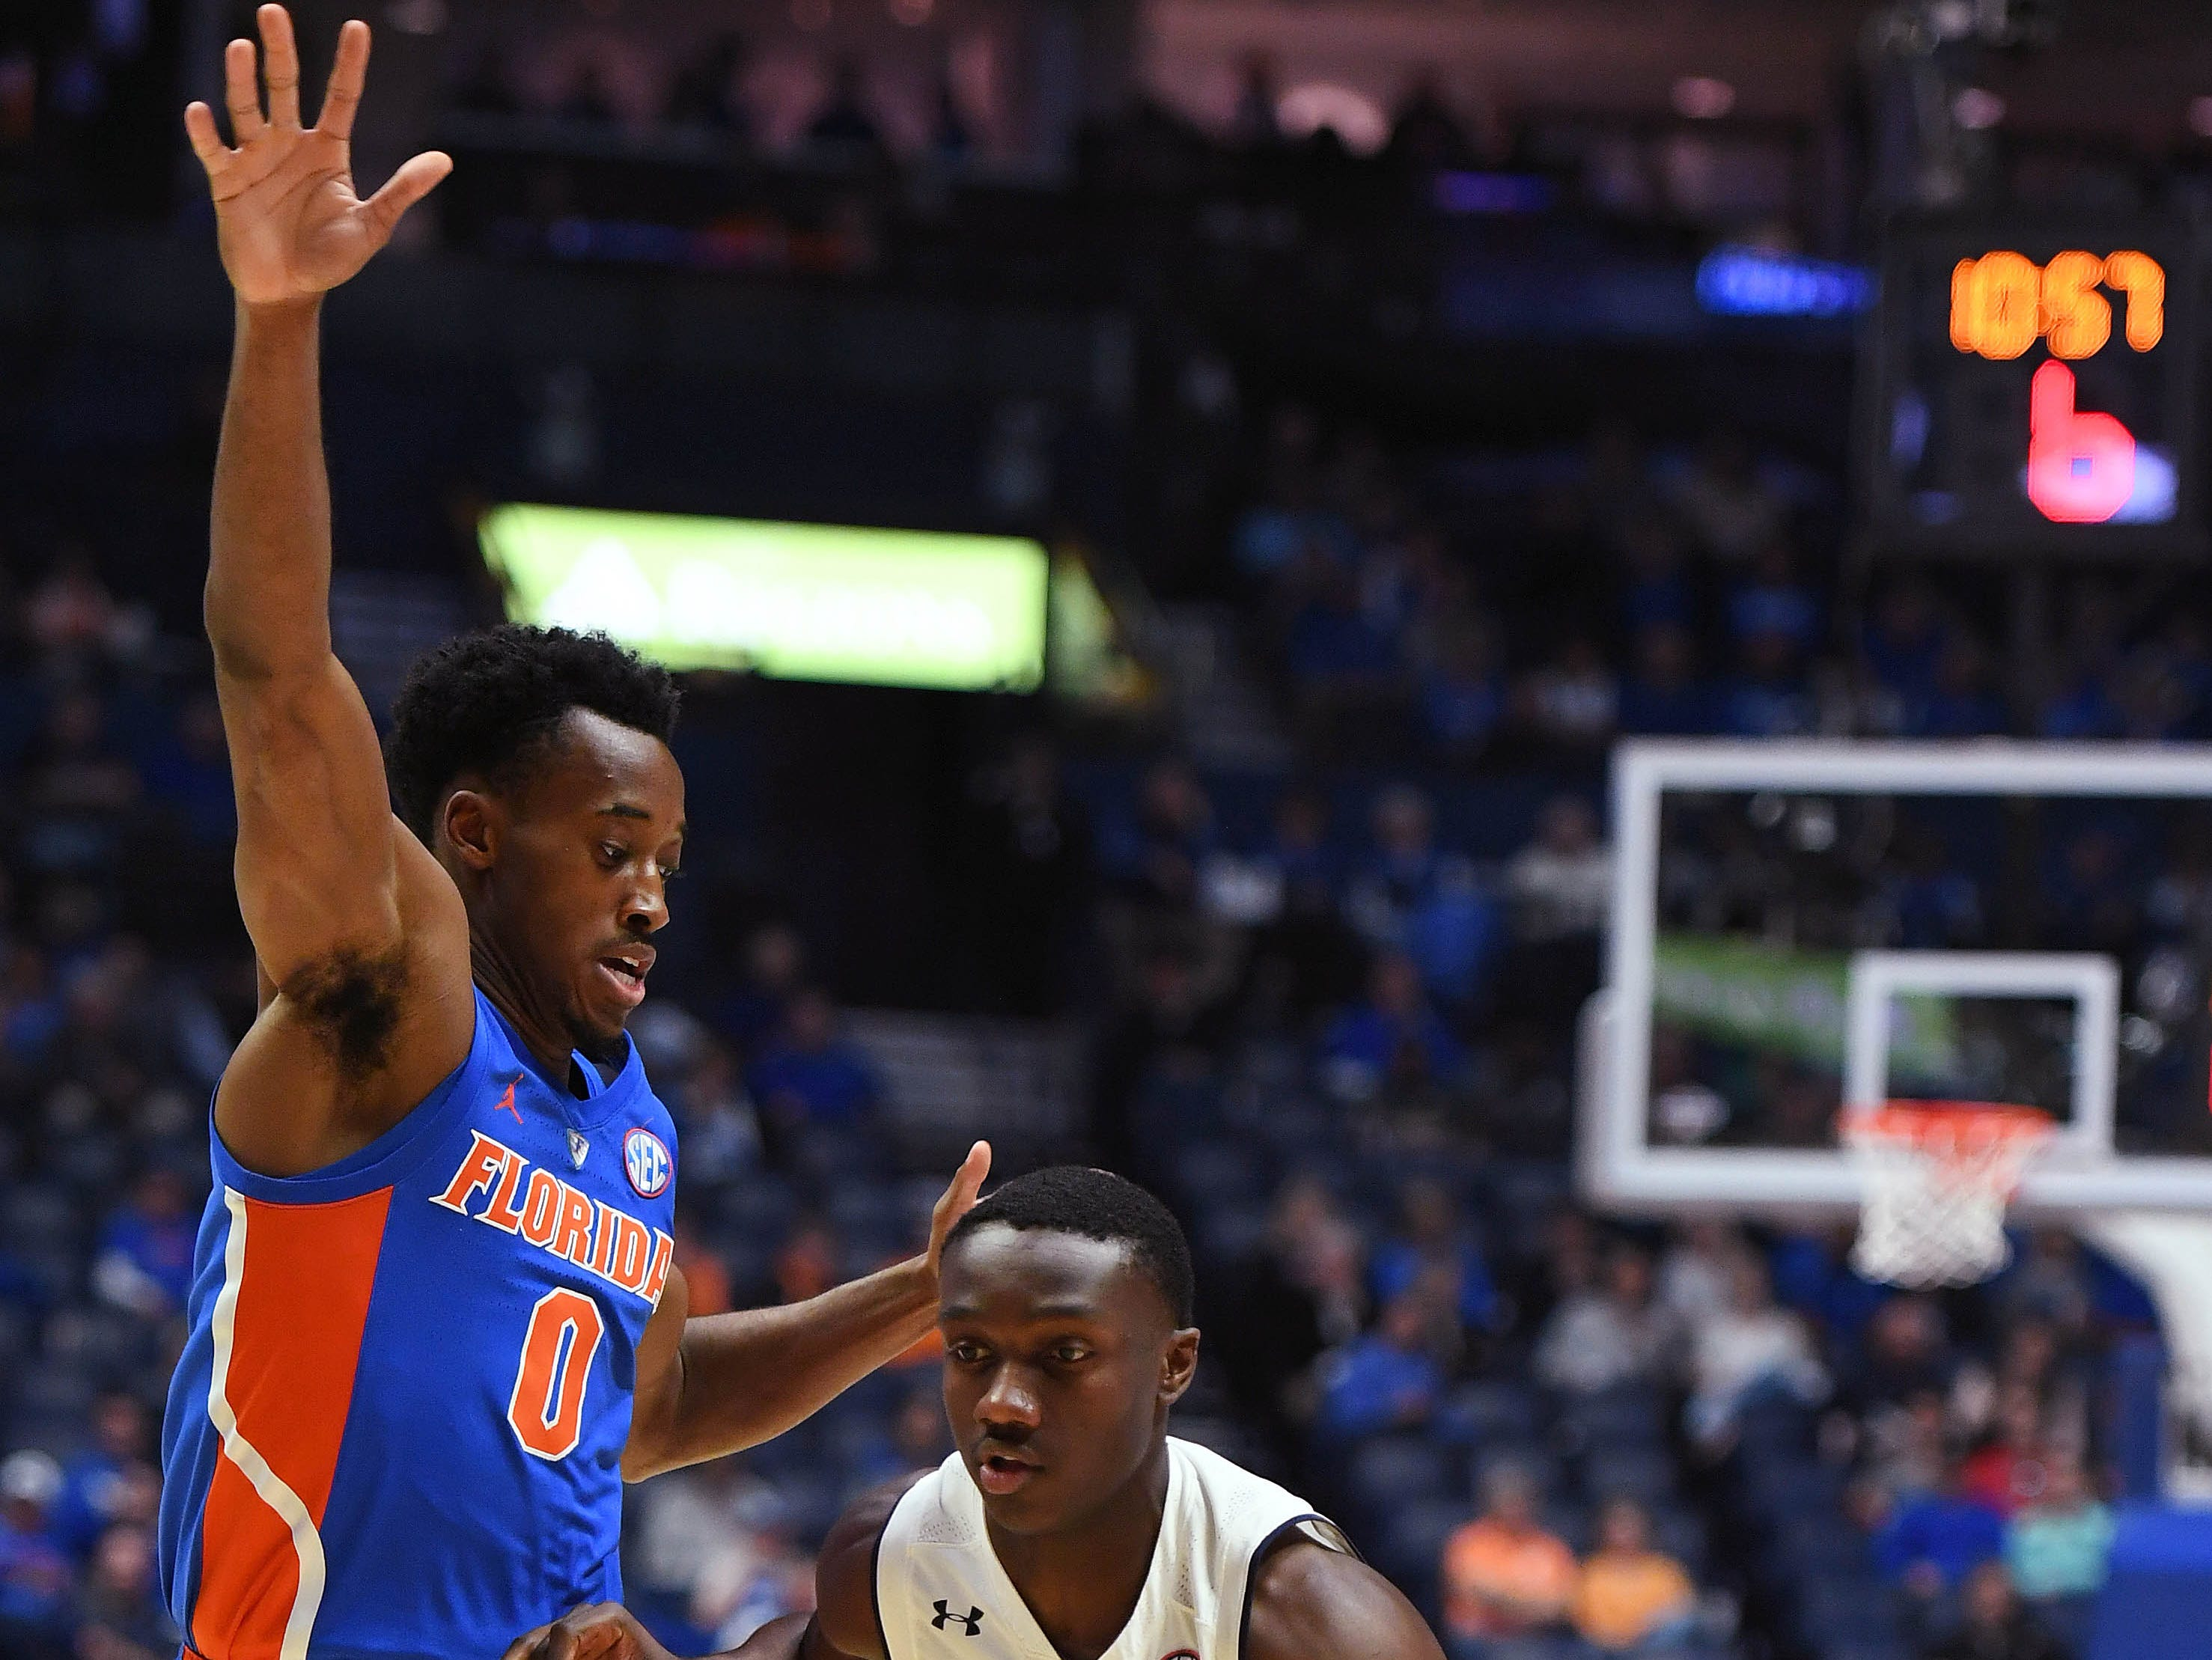 Mar 16, 2019; Nashville, TN, USA; Auburn Tigers guard Jared Harper (1) dribbles the ball as Florida Gators guard Mike Okauru (0) defends during the first half of the SEC conference tournament at Bridgestone Arena. Mandatory Credit: Christopher Hanewinckel-USA TODAY Sports